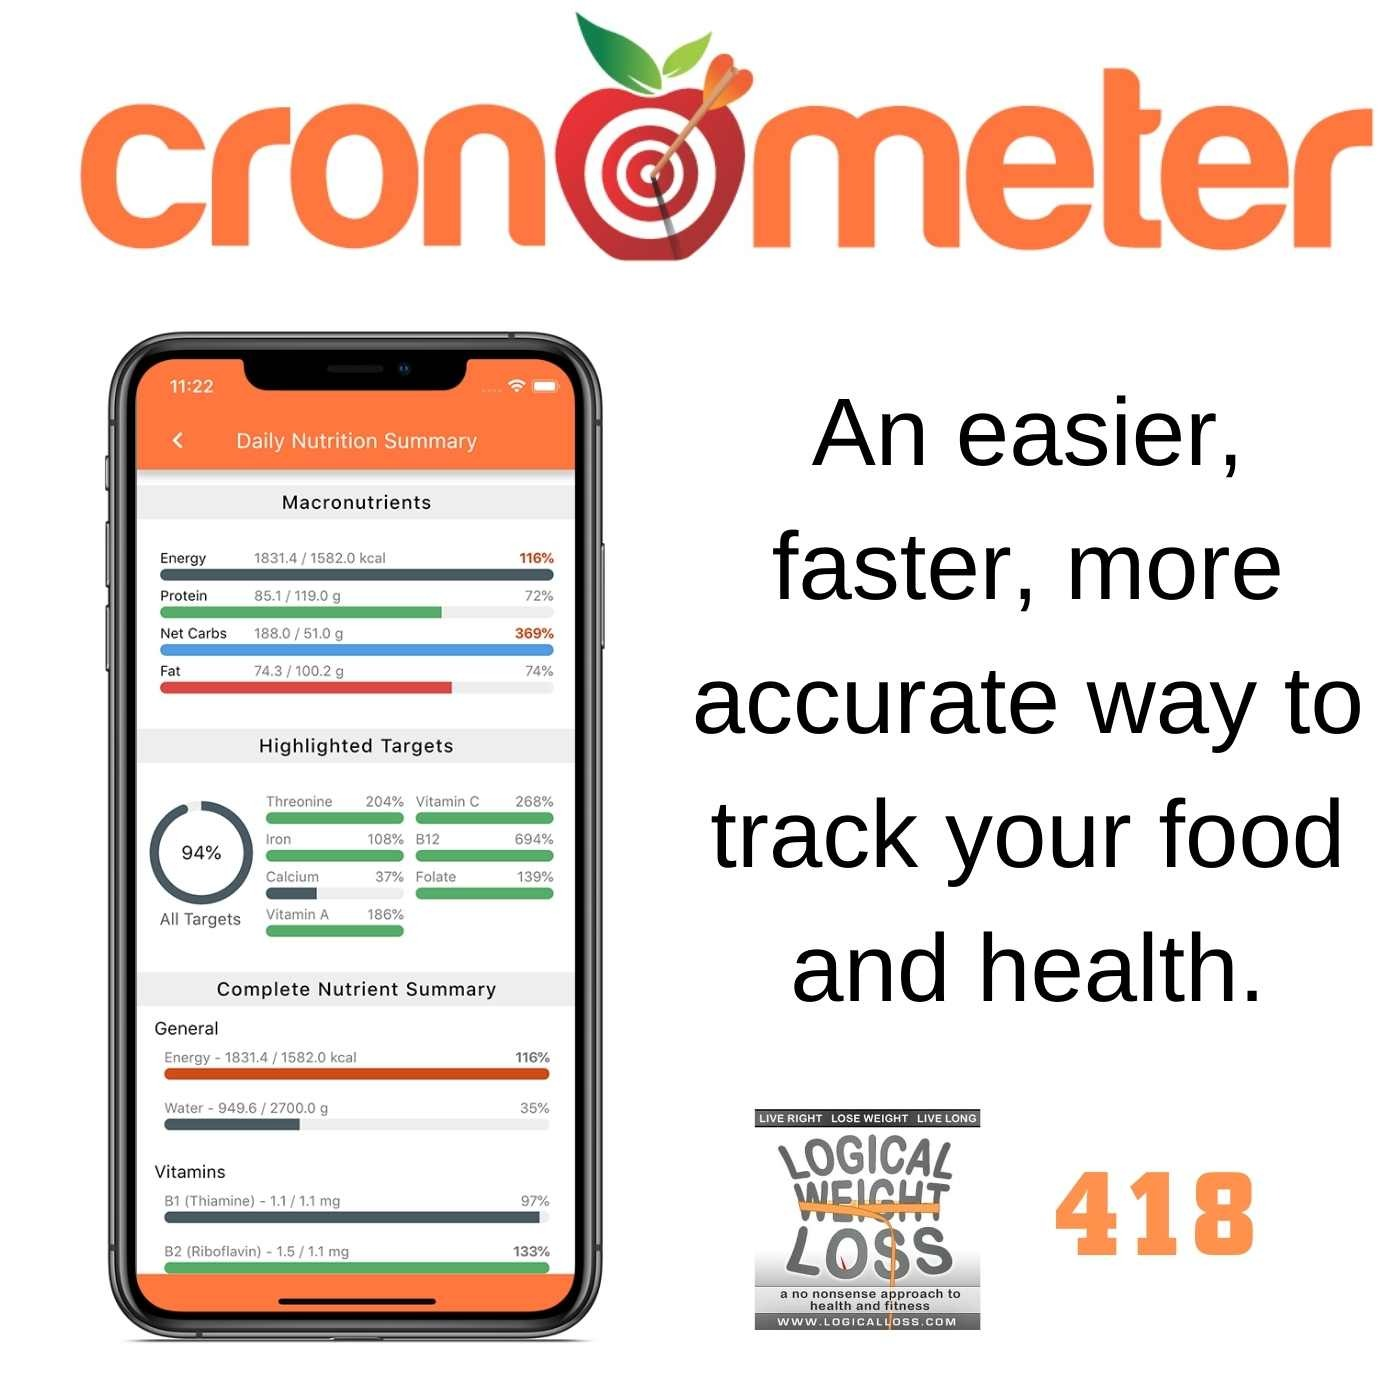 Cronometer: An Easier, Faster, More Accurate Way to Track Your Health Image